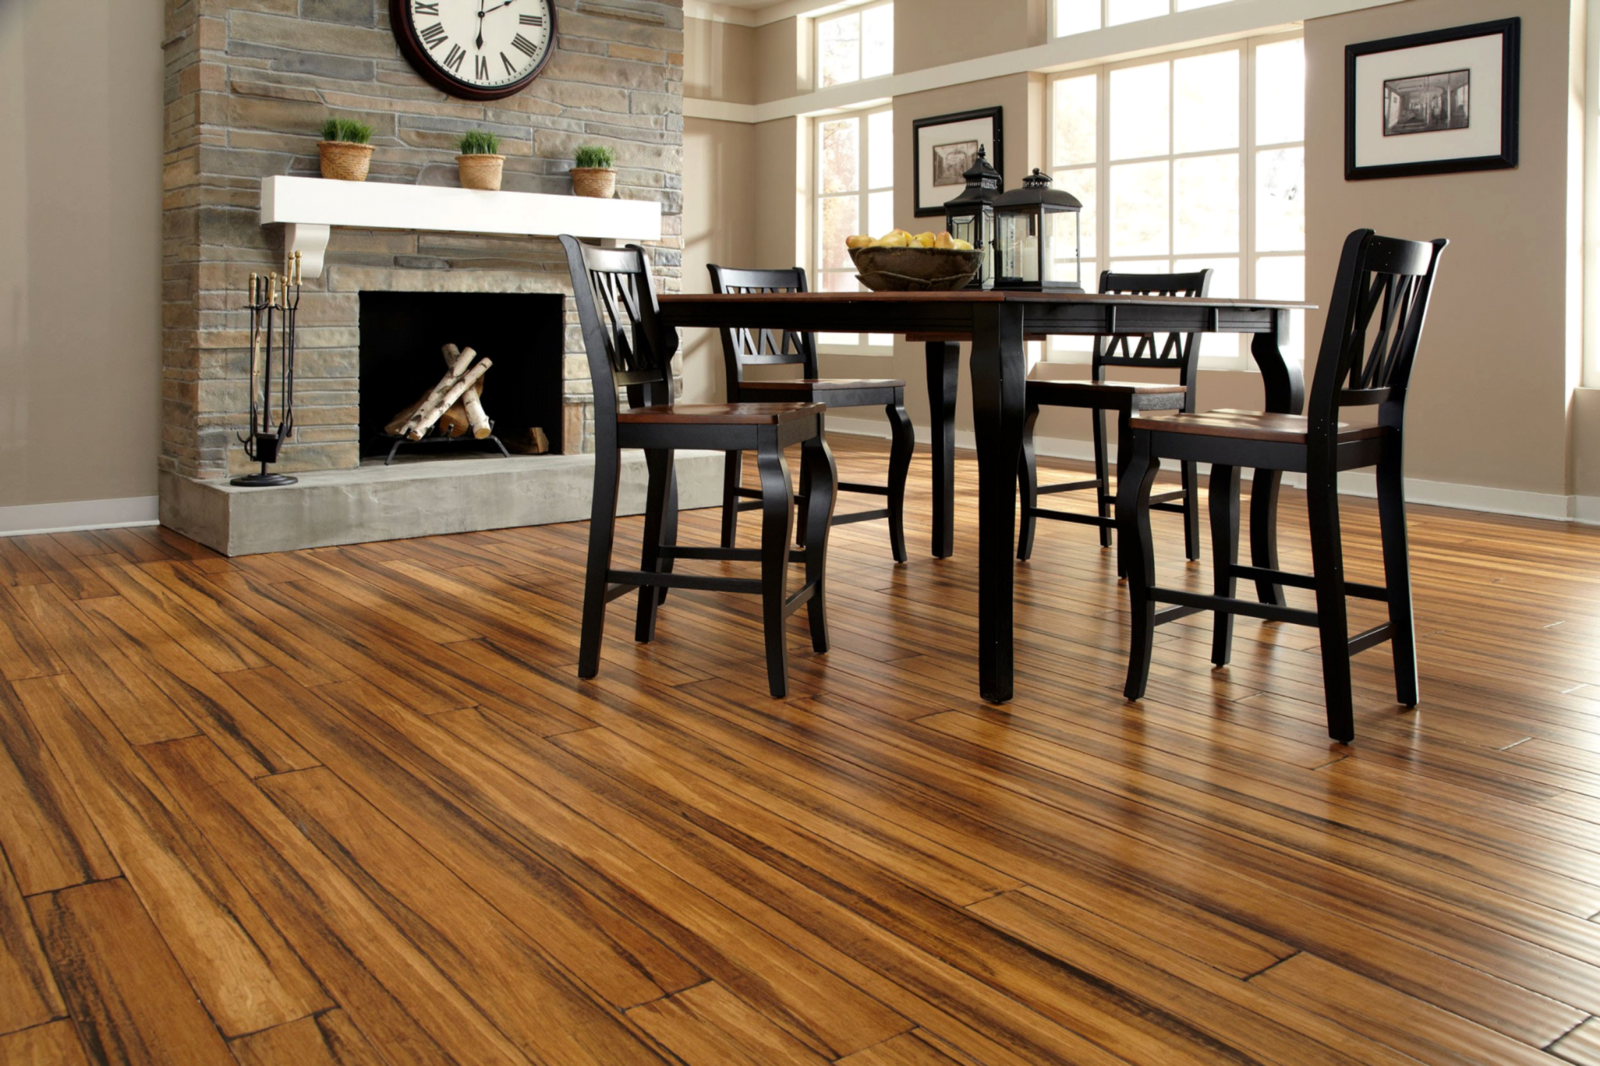 ... one of the most favorite and widely used among people who looking for an affordable beautiful and lasting material is the laminate flooring. & Top 5 Reasons Why Laminate Flooring Is a Great Choice For Your Floor